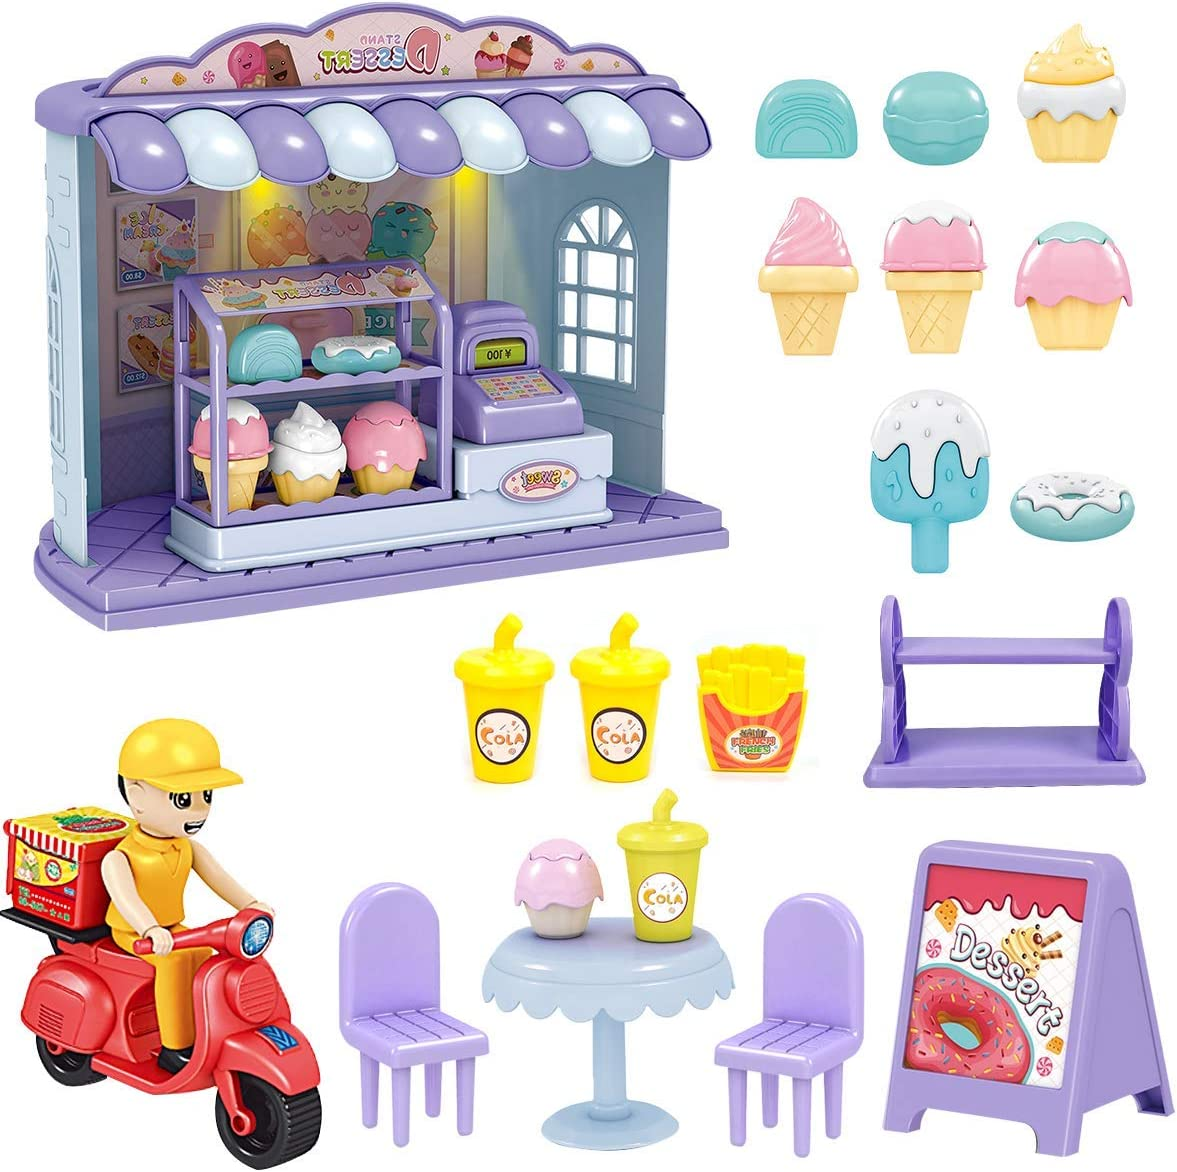 XMASGIC Sweet Treats Ice Cream Parlour Playset - Dining Sets, Take-Out Motorcycle, Cashier Services, Pretend Play Food Decorating Kit, Toy Frozen Dessert and Accessories for Kids 3 and Up (19 Pieces)